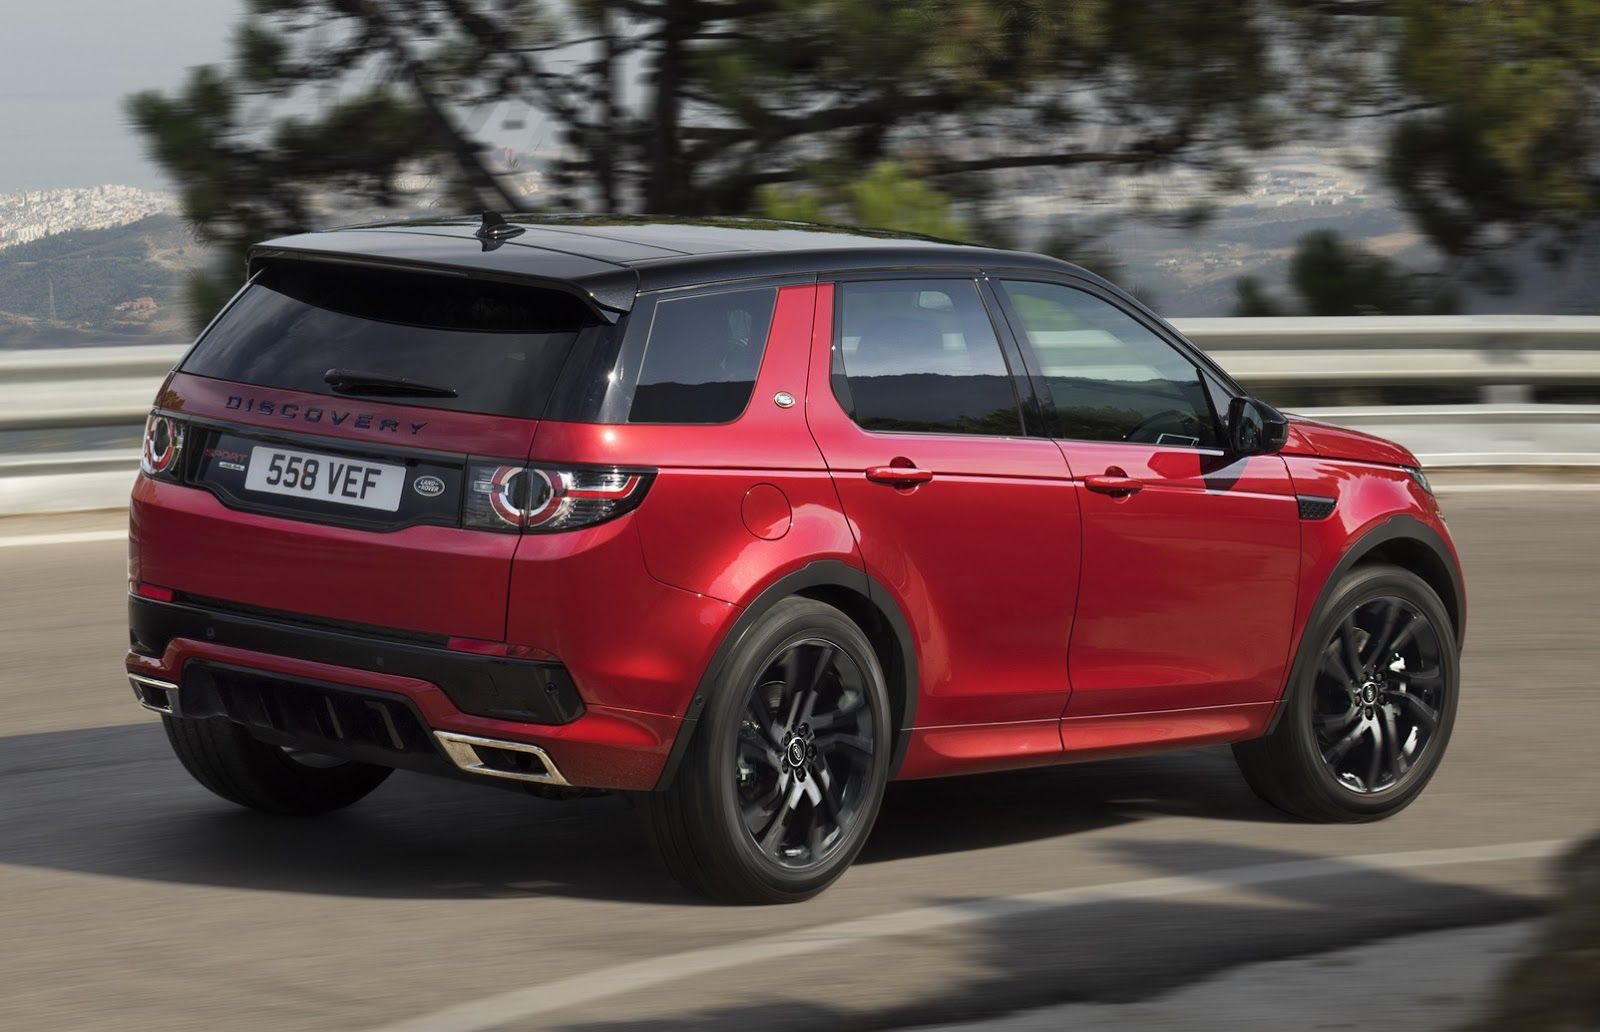 2016 land rover discovery sport 39 s hse lux the exterior of the discovery sports is pepped up. Black Bedroom Furniture Sets. Home Design Ideas